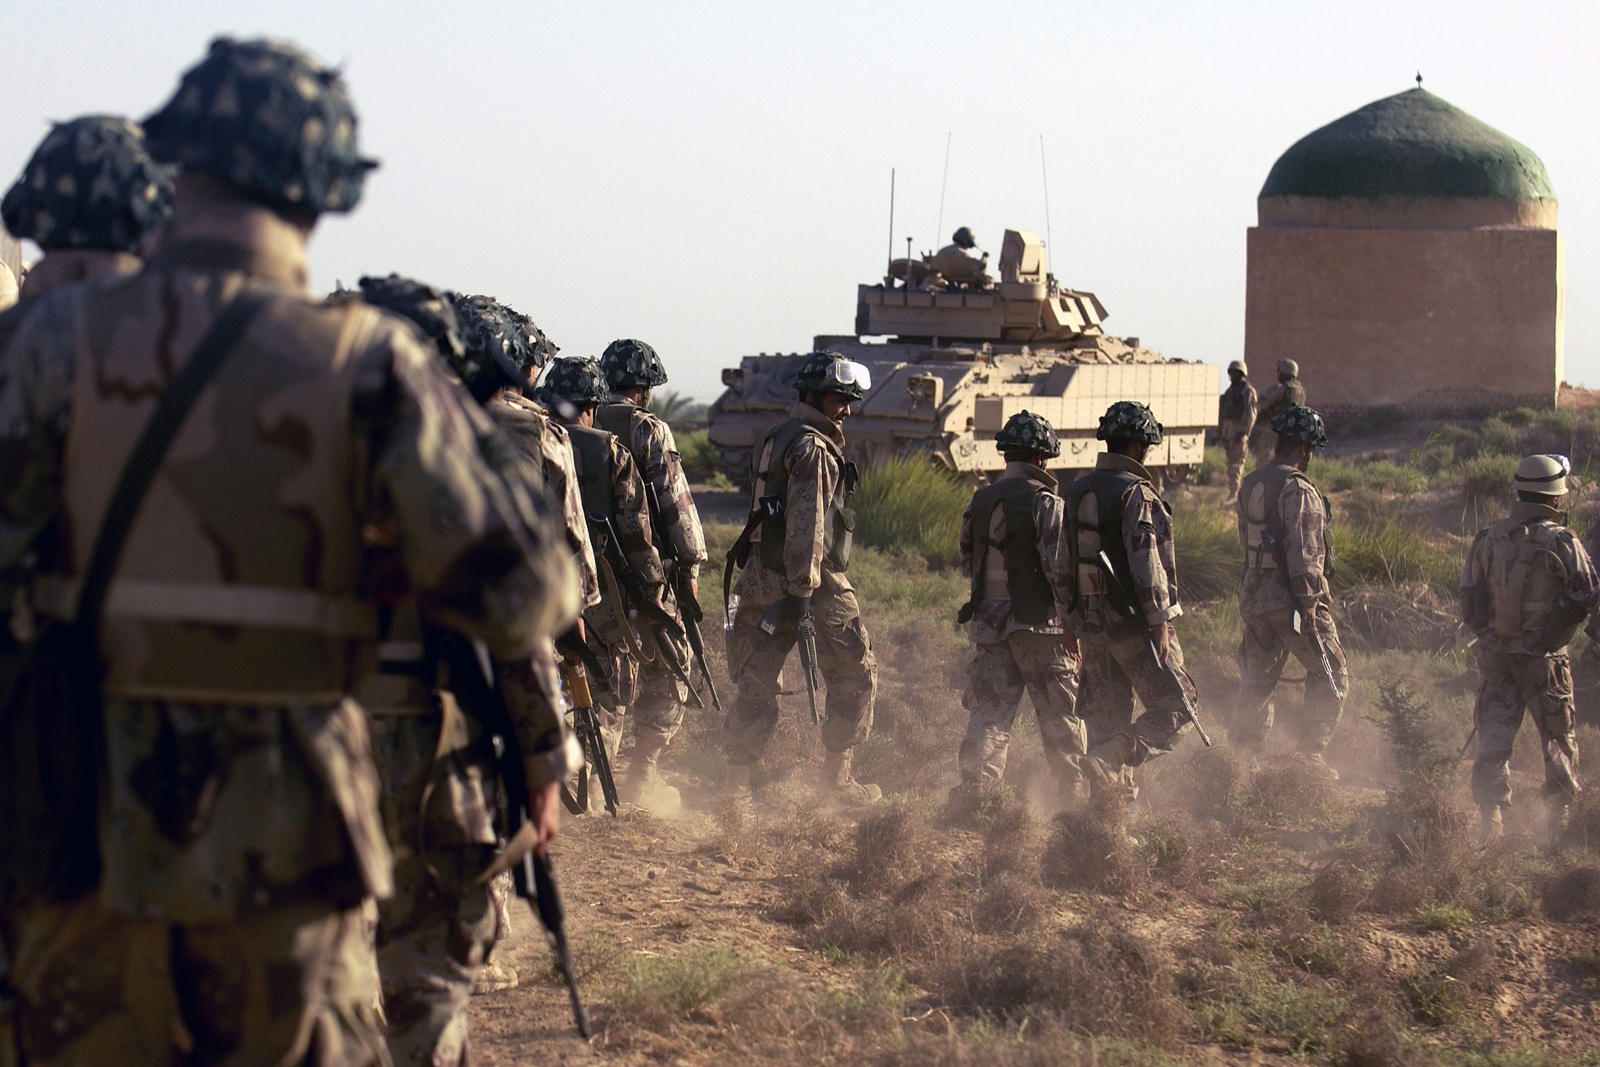 Iraqi Army (IA) 4th Battalion (BN), 1ST Brigade (BGDE), Iraqi Intervention Force (IIF), Soldiers and US Army Reserve (USAR) Soldiers walk a field patrol on the outskirts of the village of Al Taji, Baghdad Province, Iraq (IRQ), looking for a suspected mortar launch site during Operation IRAQI FREEDOM